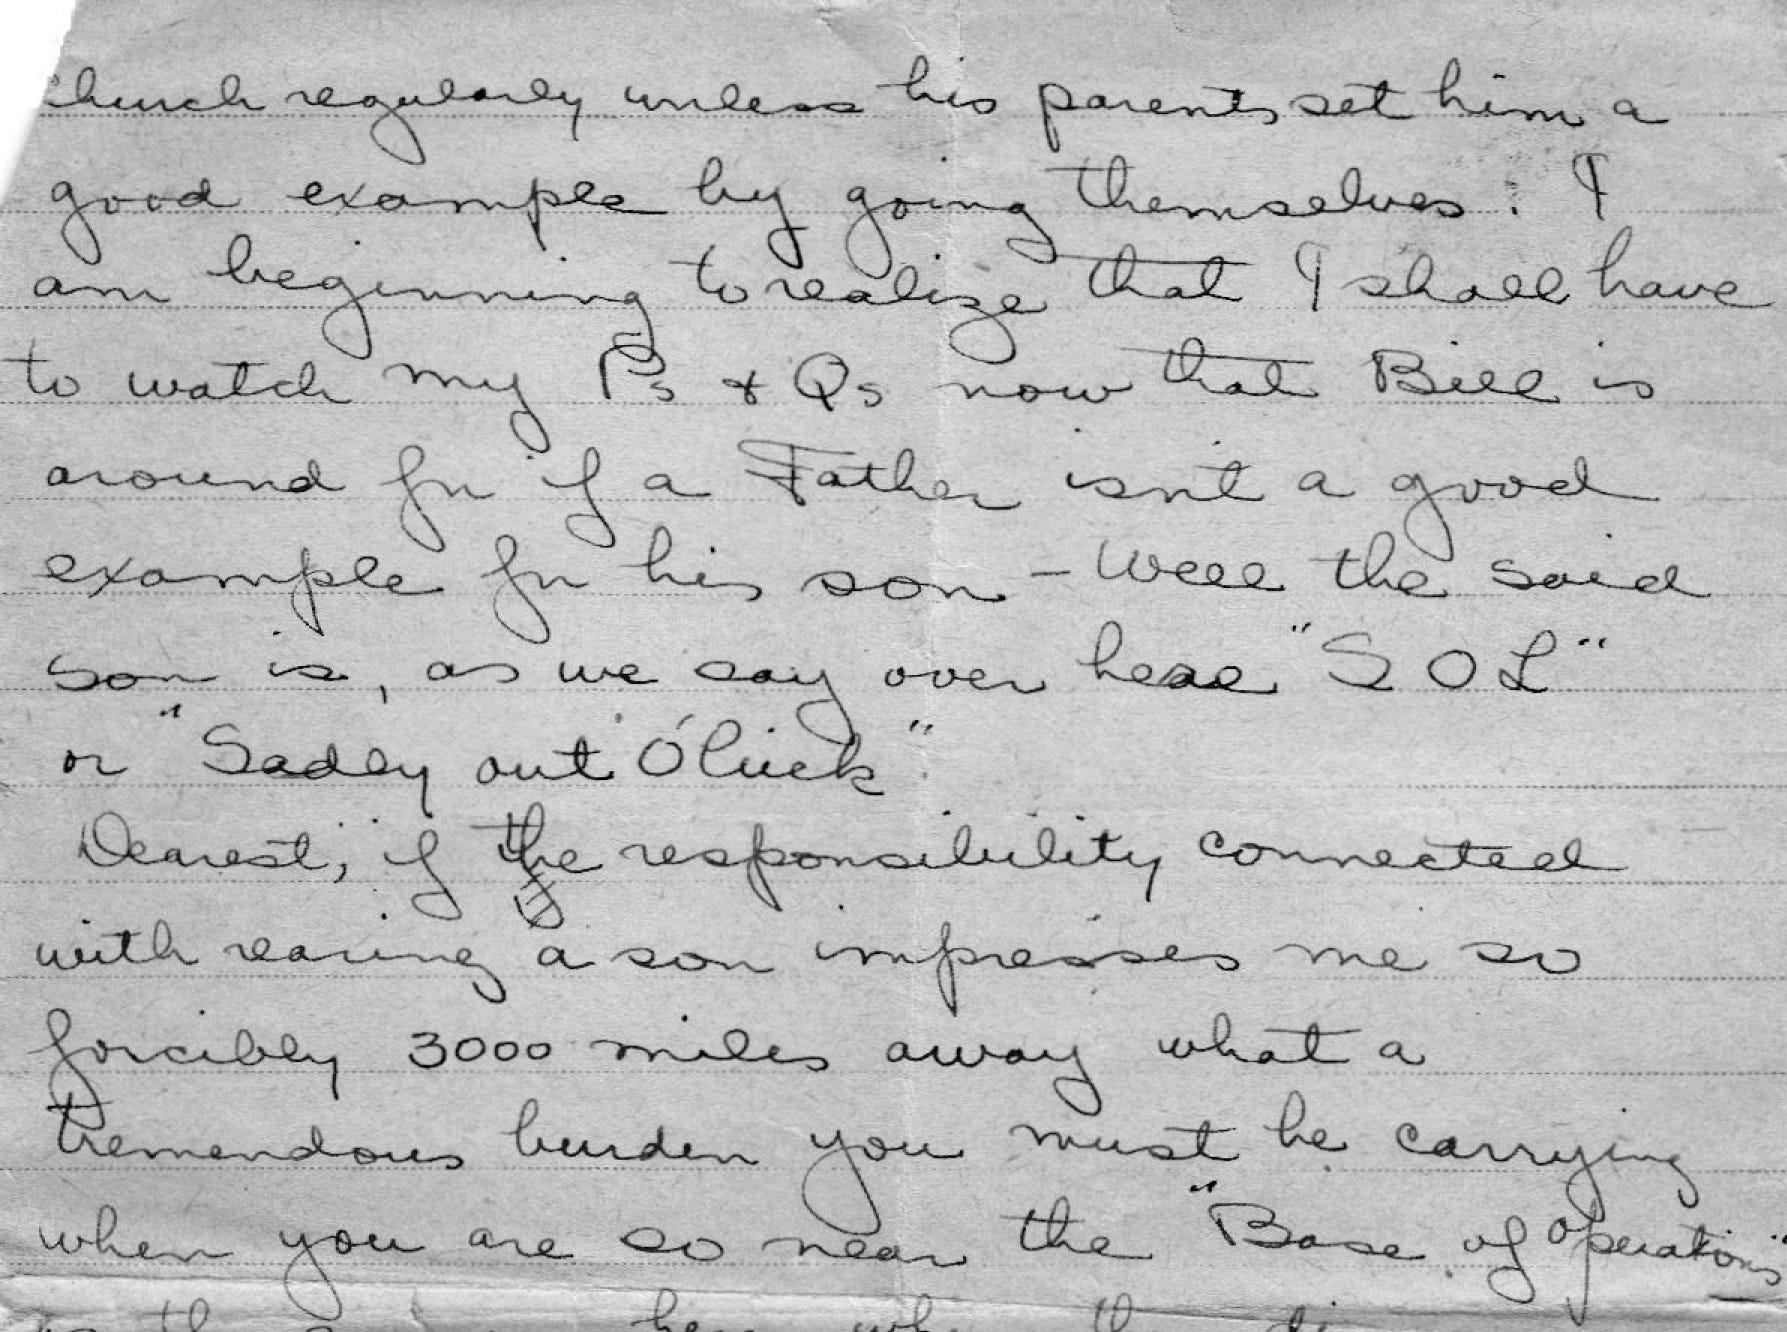 Page 2 of a letter to his wife on Nov. 17, 1918, in which Lolo writes about how much he misses his wife, how much he loves her and how he can't wait to meet his newborn son.